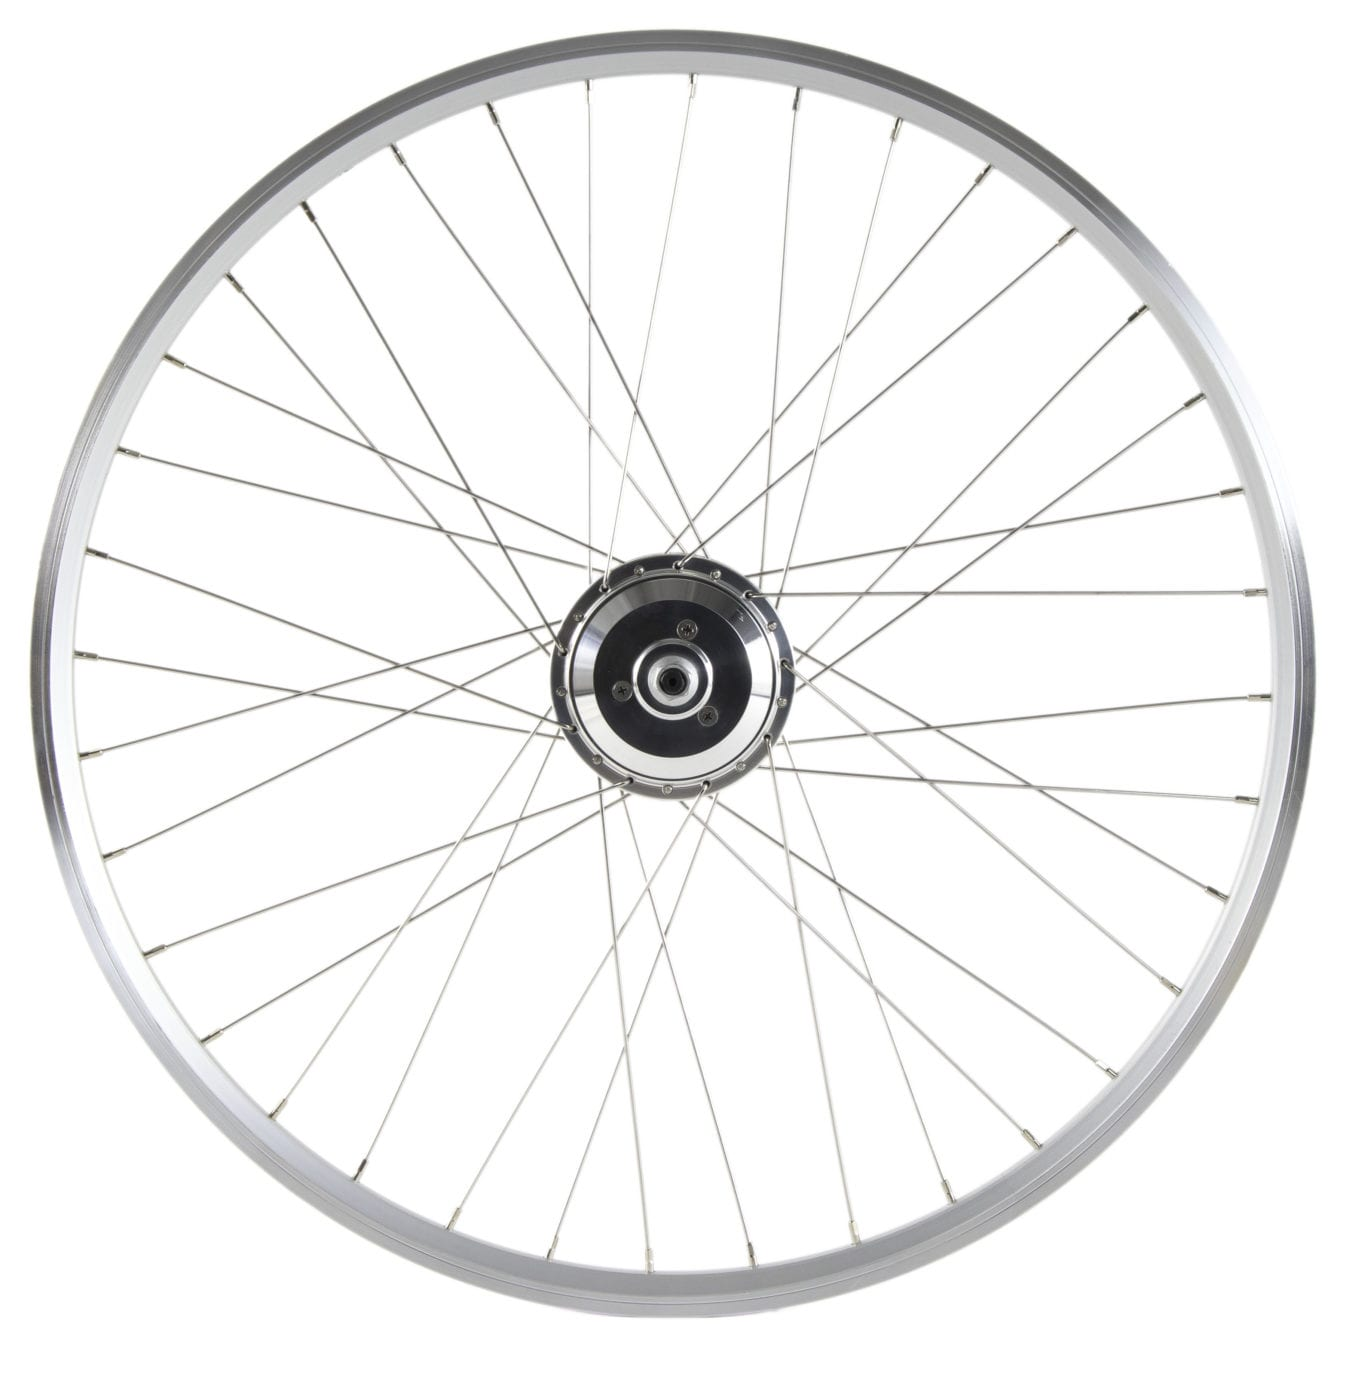 What Is My Wheel Size